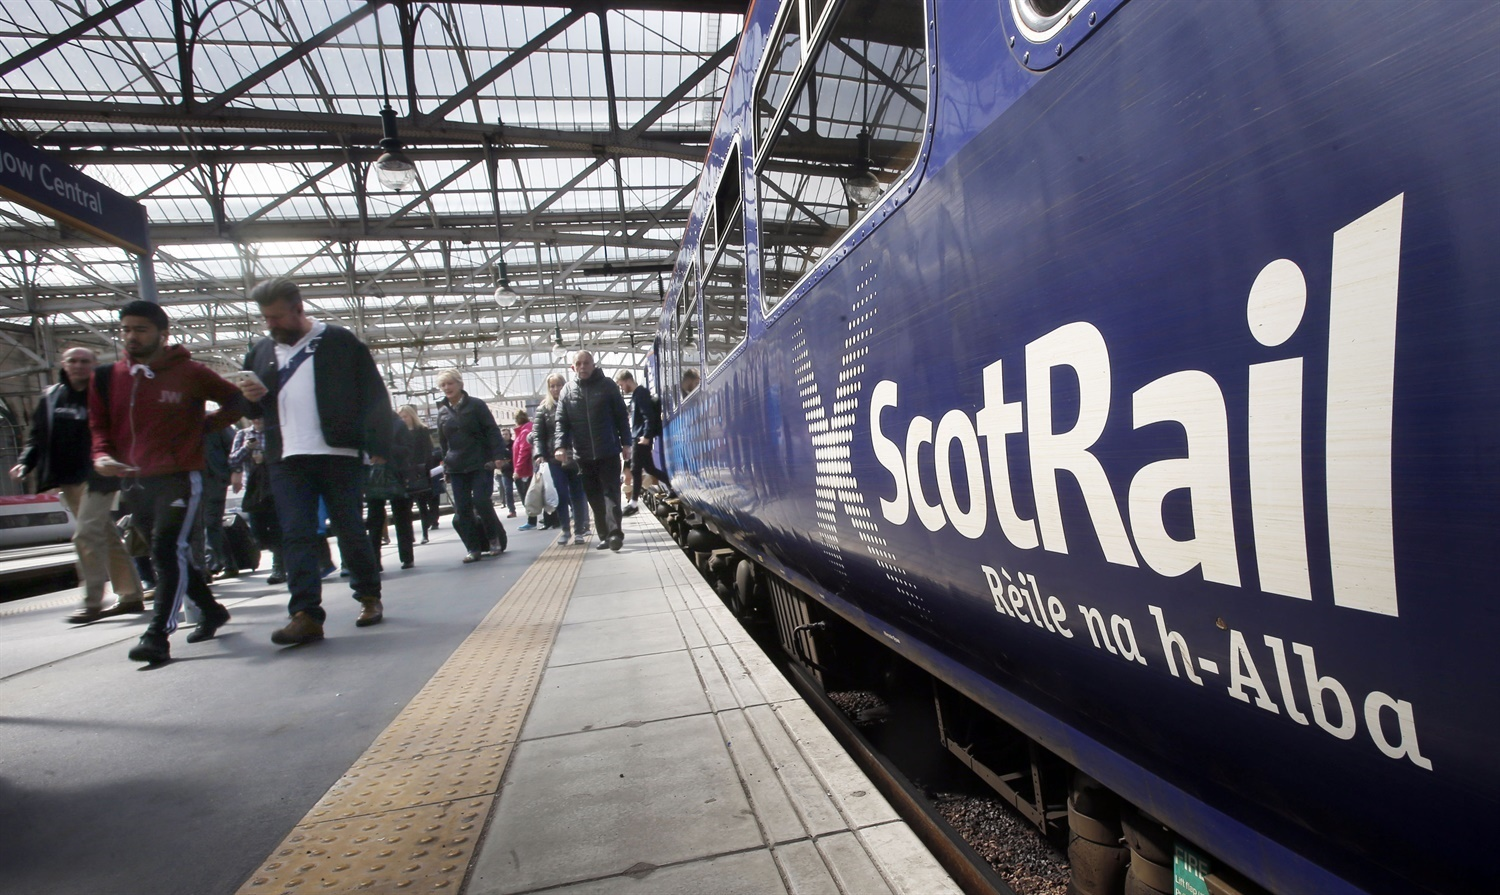 RMT suspends ScotRail strikes